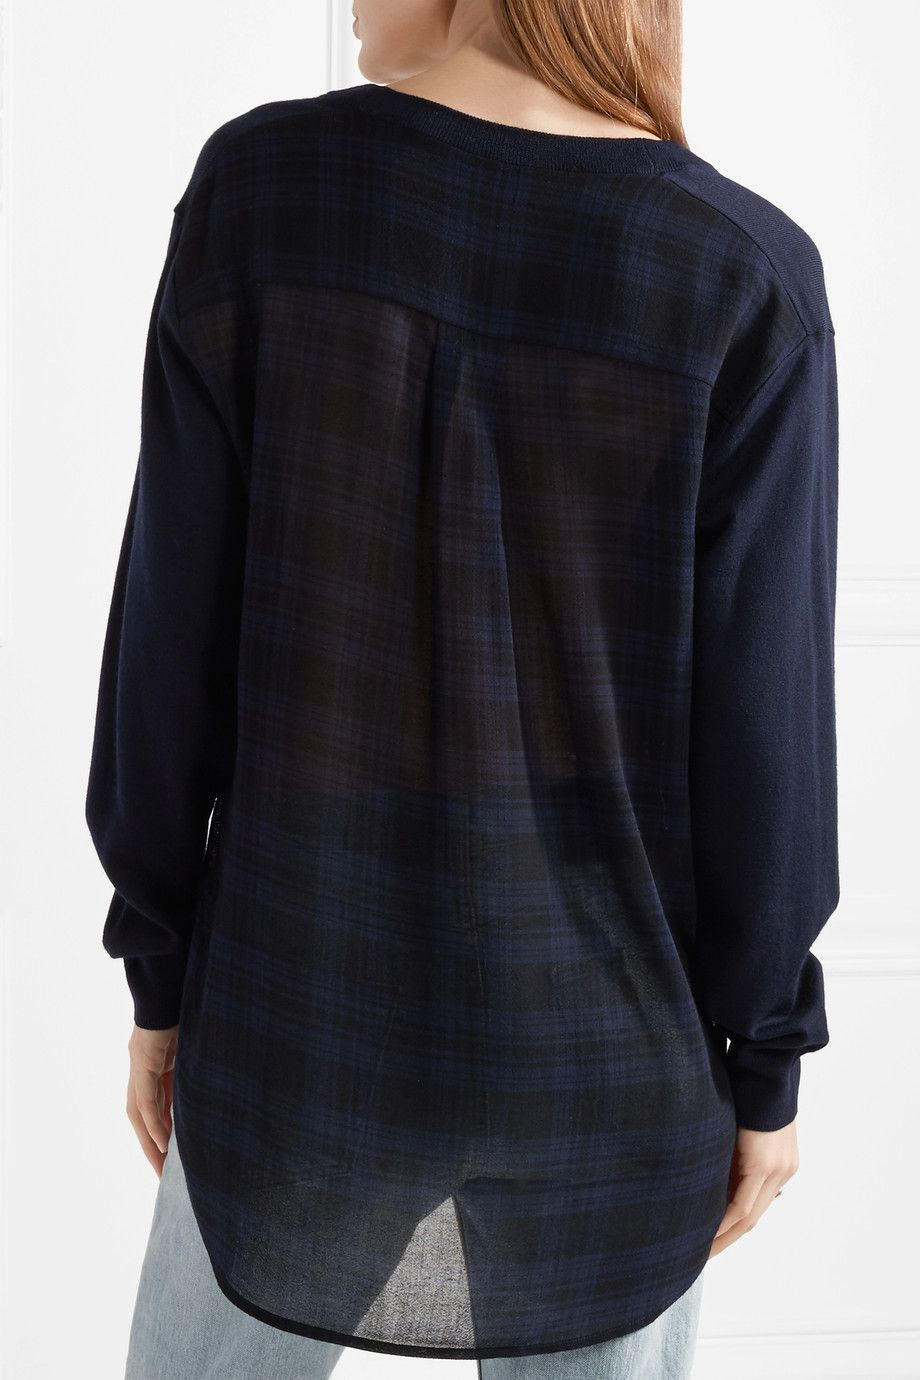 Asymmetric Plaid Gauze And Merino Wool Sweater - Midnight blue Alexander Wang Visa Payment Online Geniue Stockist Clearance High Quality Outlet Low Shipping Fee kE95mEeUC